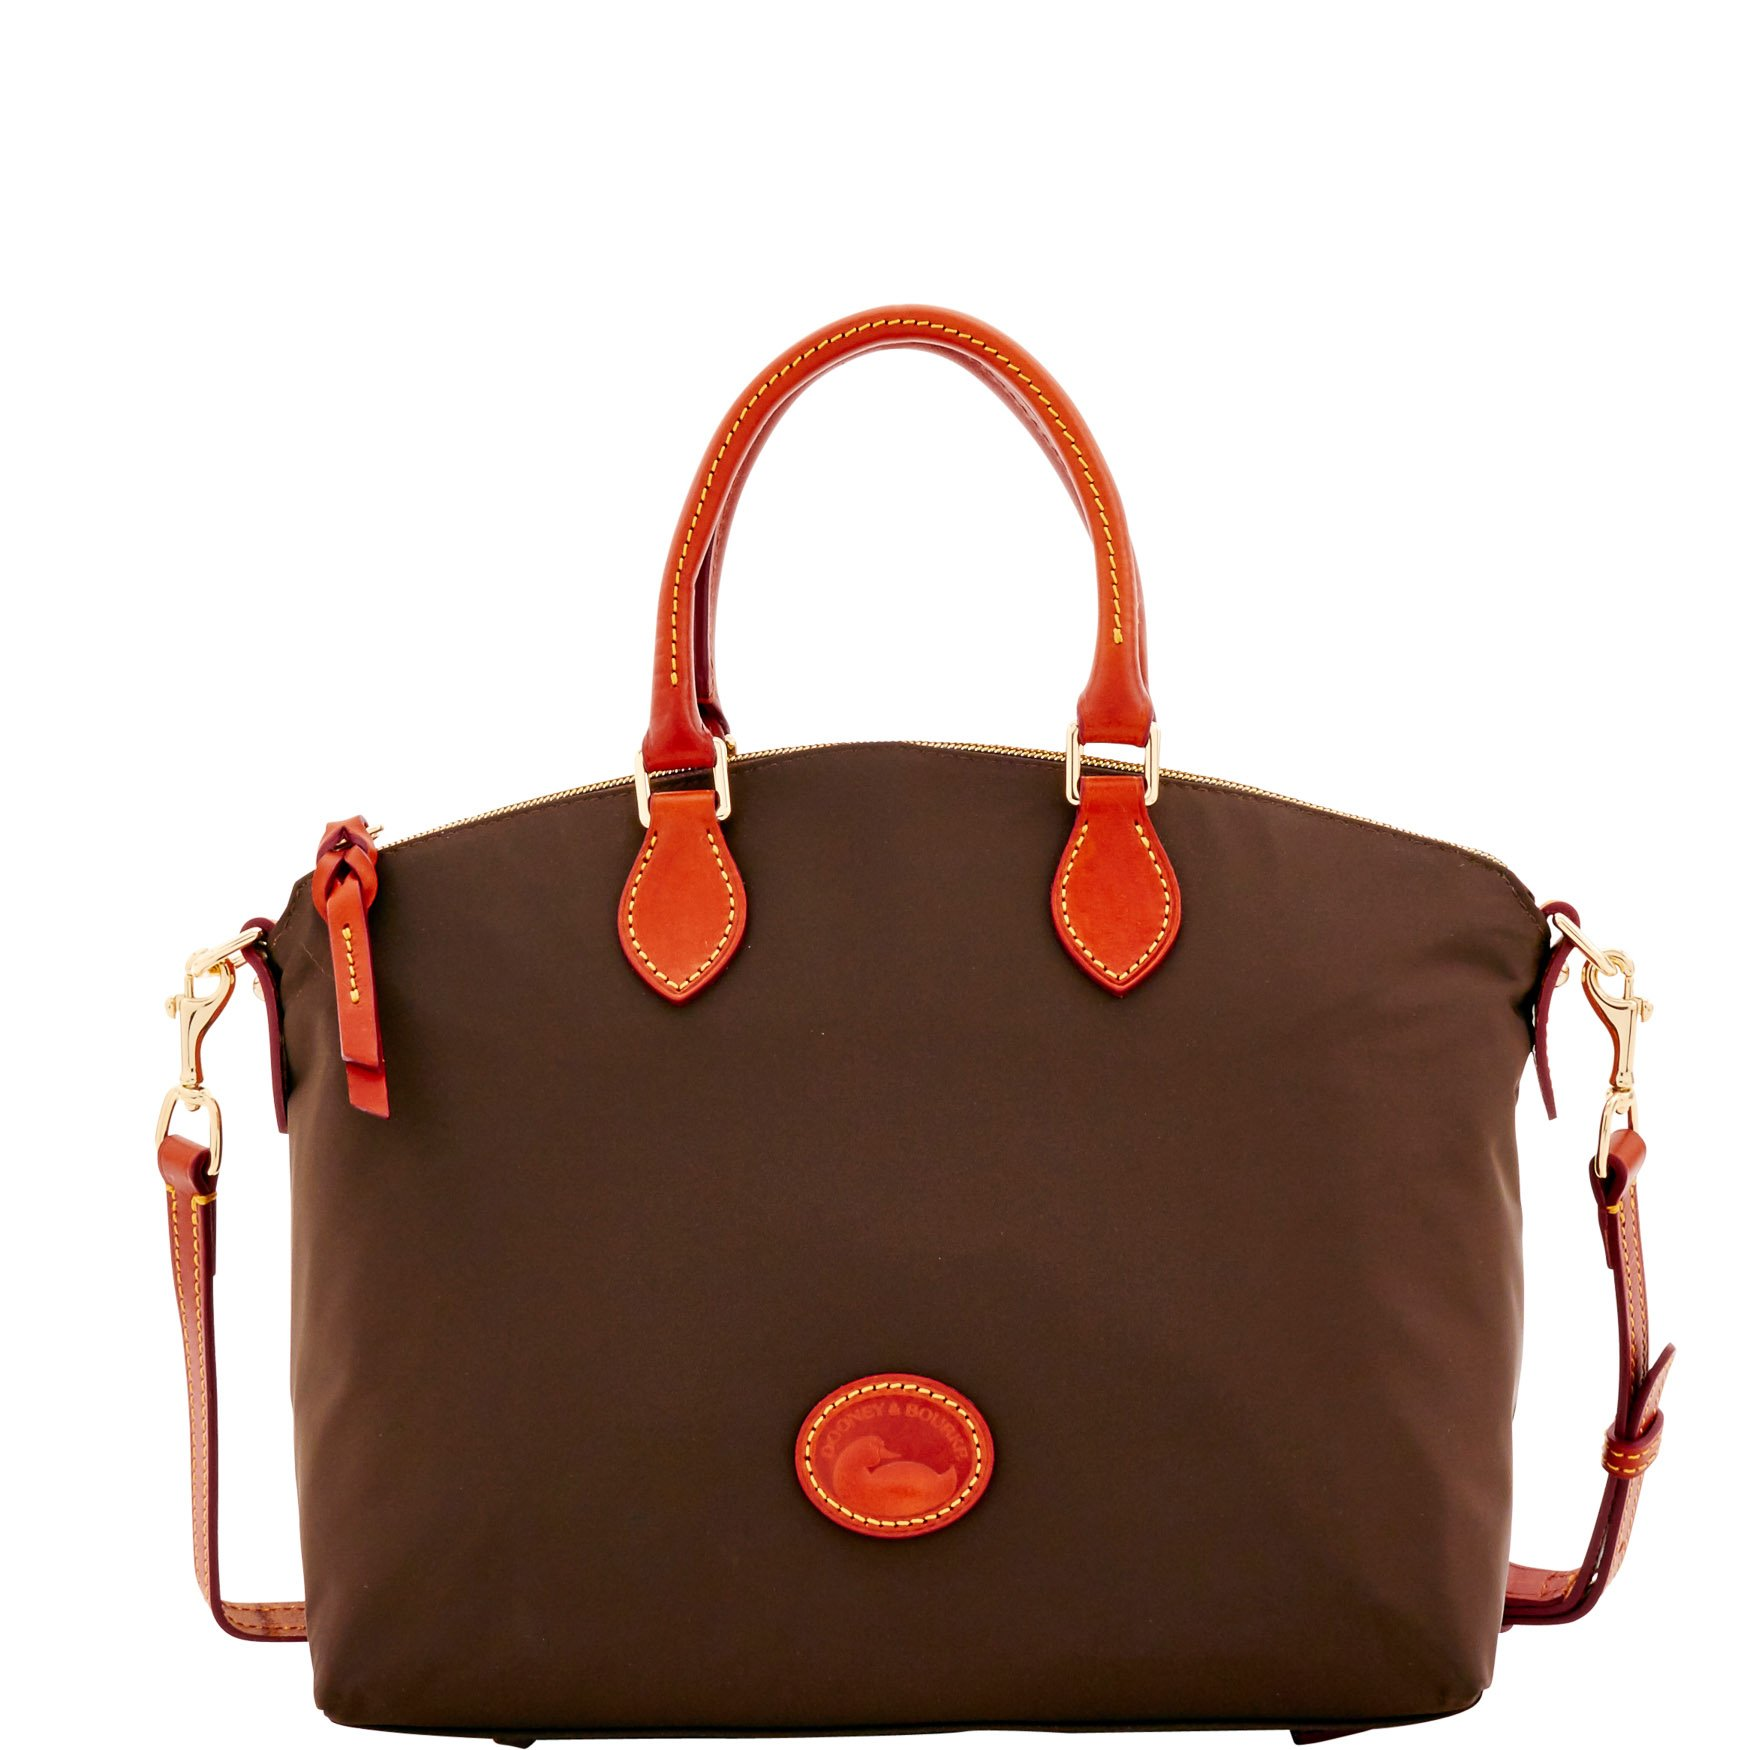 Dooney & Bourke Nylon Satchel Brown T' Moro Leather Trim